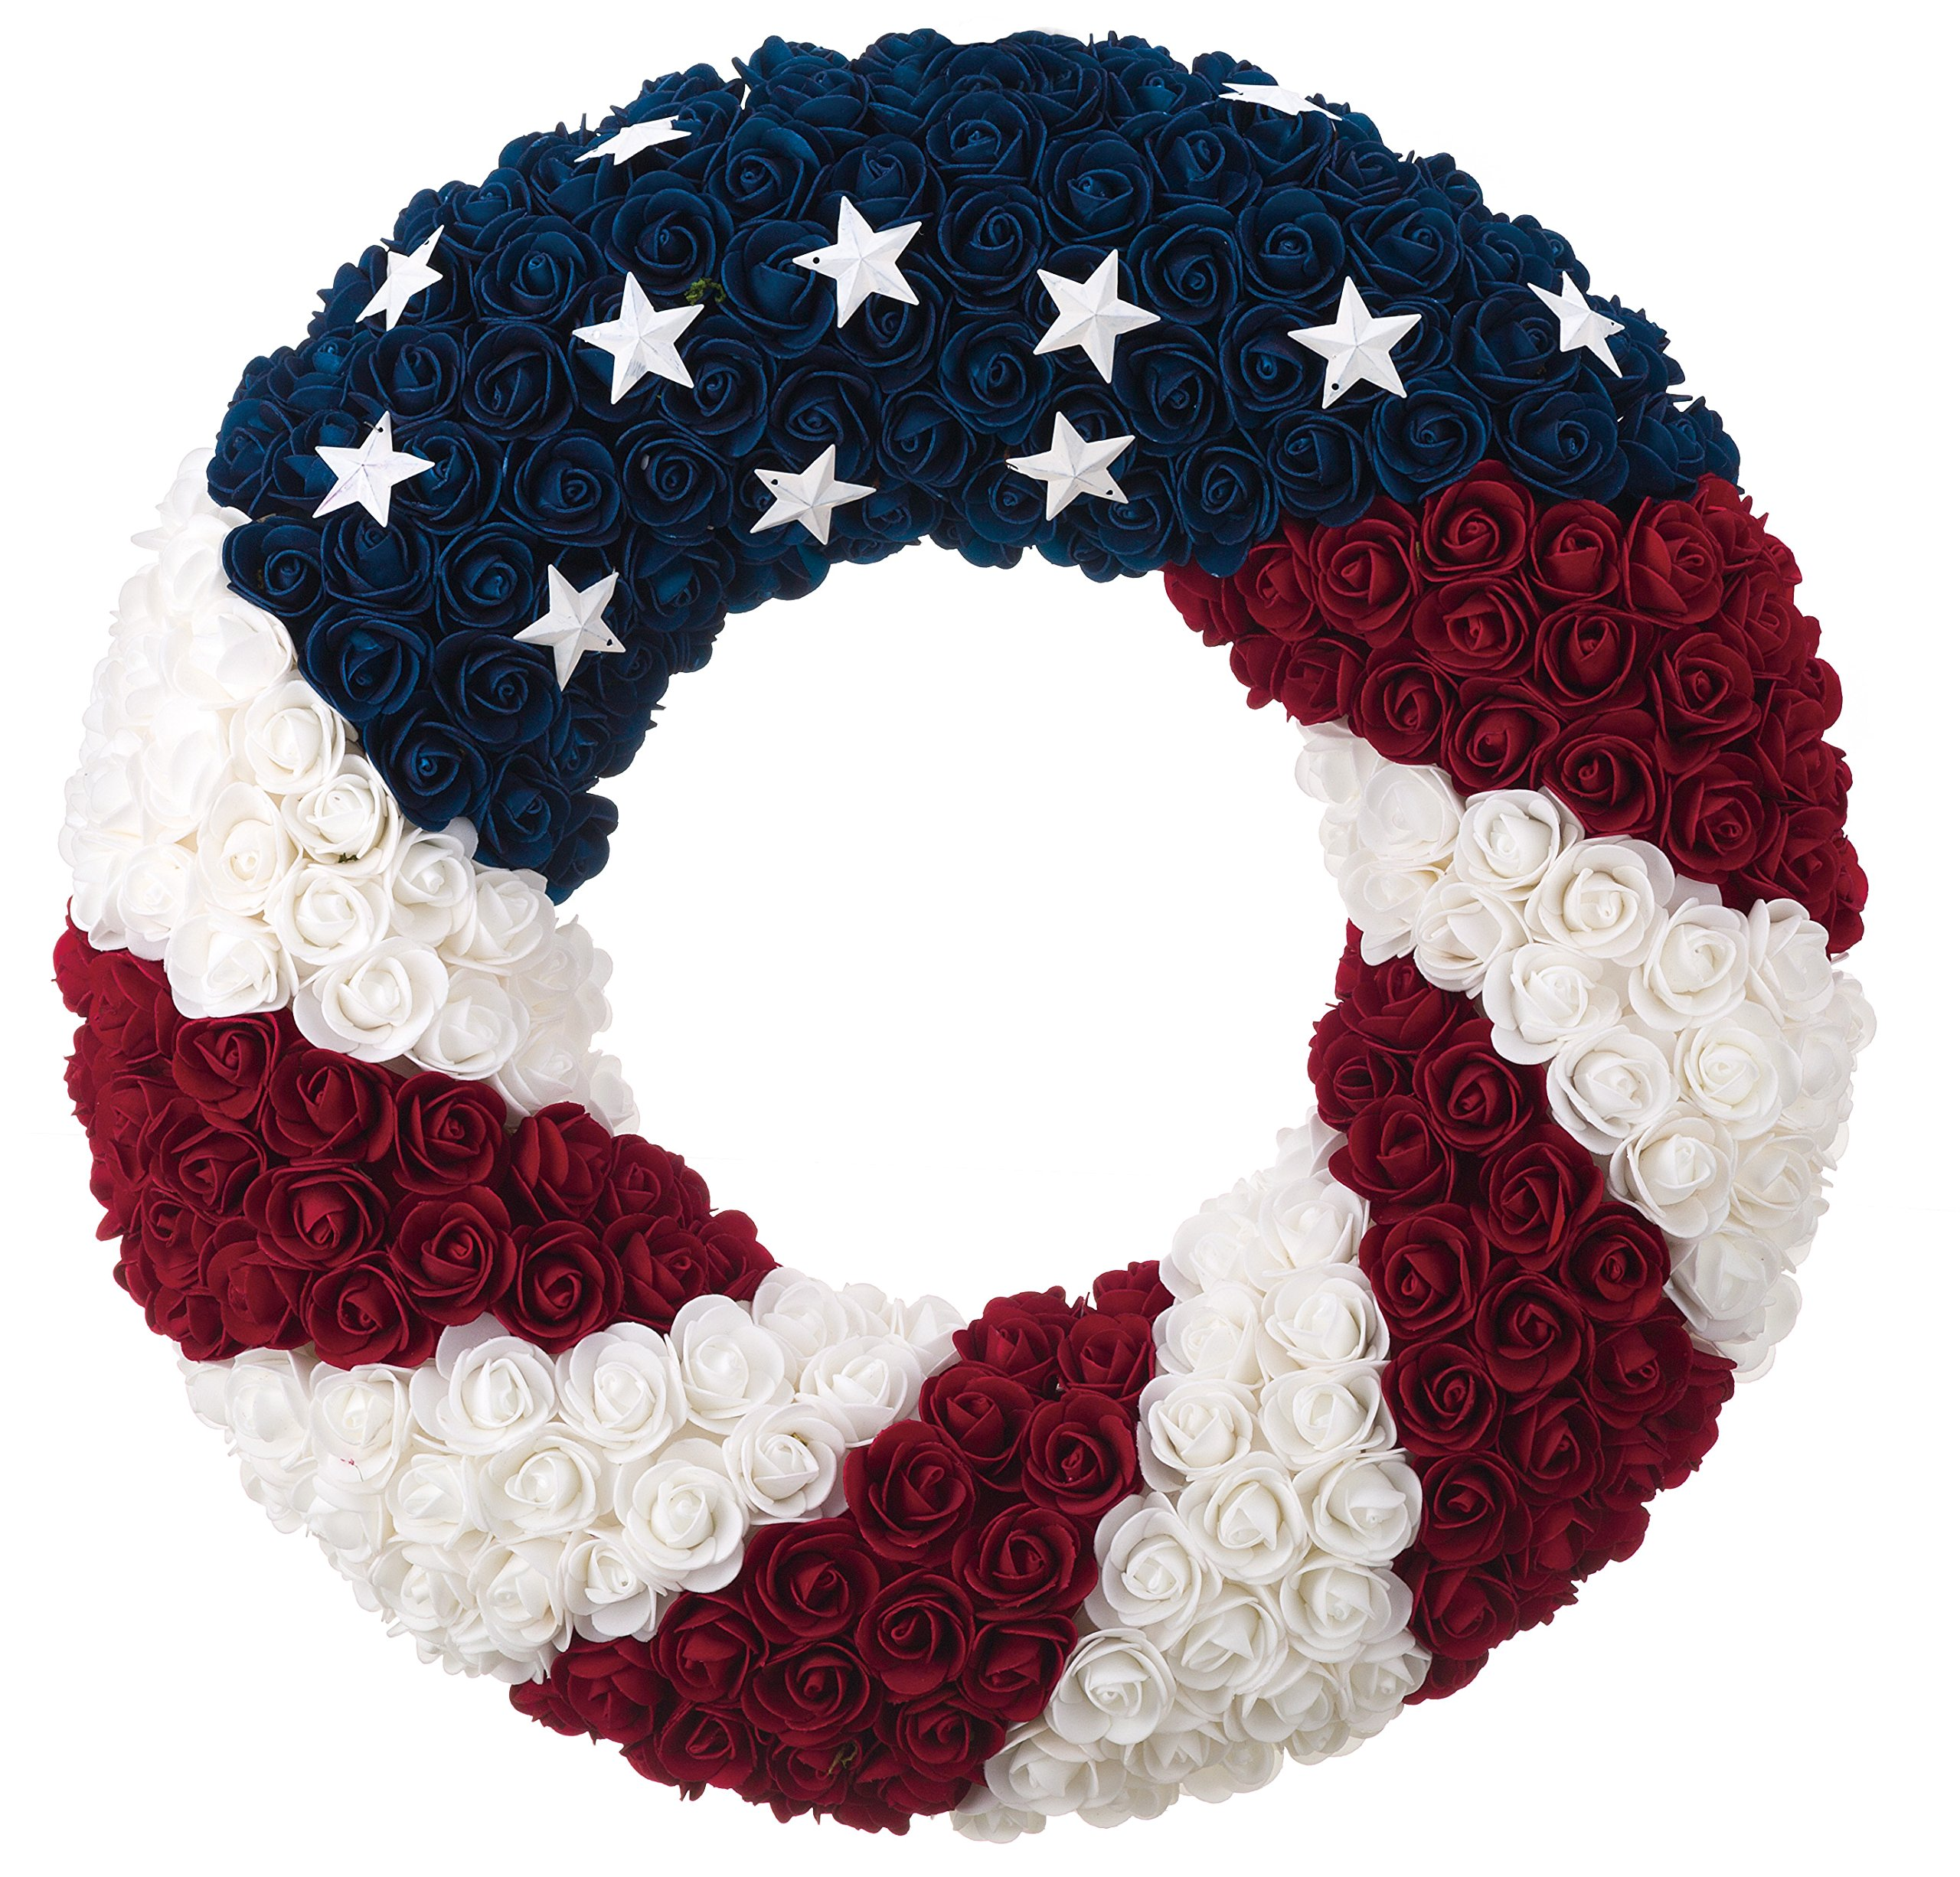 ranspac-Silk-Rose-Americana-Wreath-Patriotic-Wreath-21-Inch-Diameter-Roses-and-Stars-Red-White-and-Blue-4th-of-July-Decorating